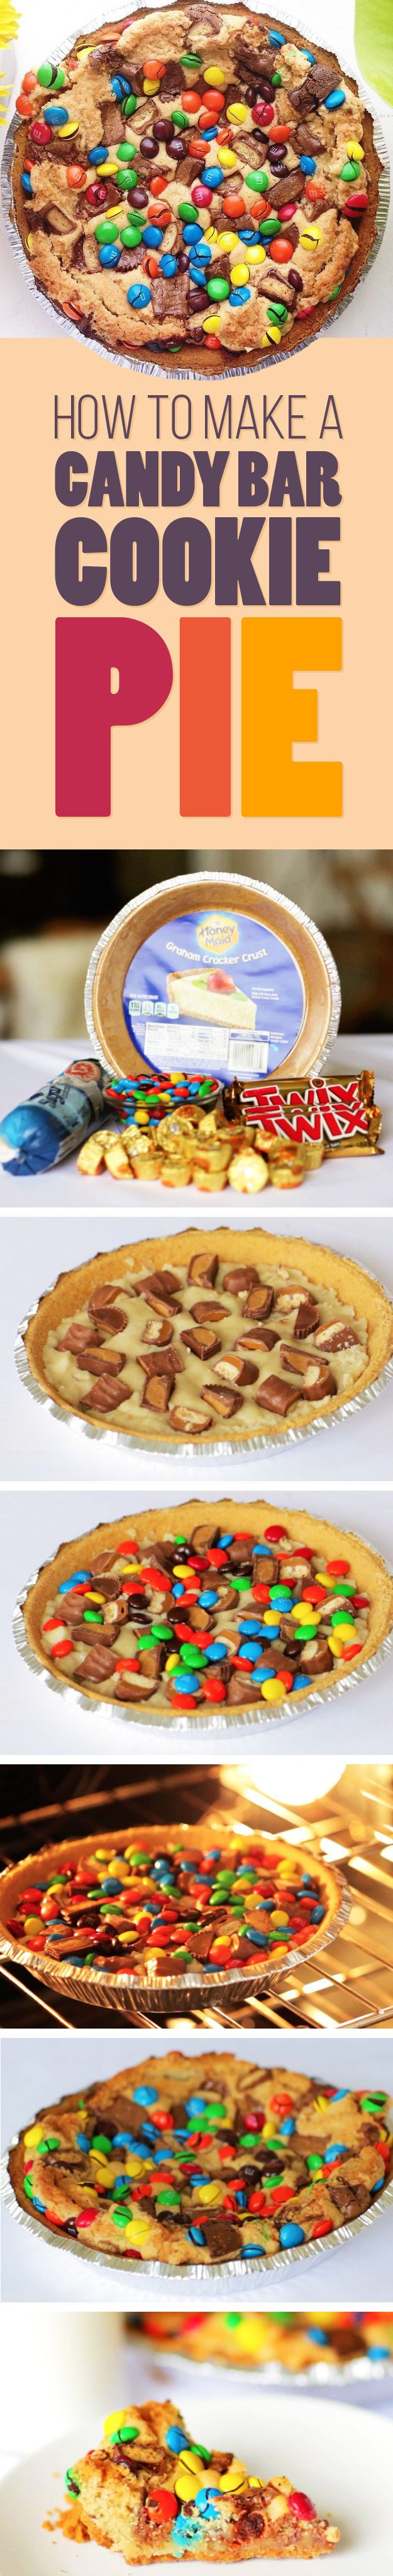 The Best Pie Is This Cookie Dough Pie Full Of Candy ...